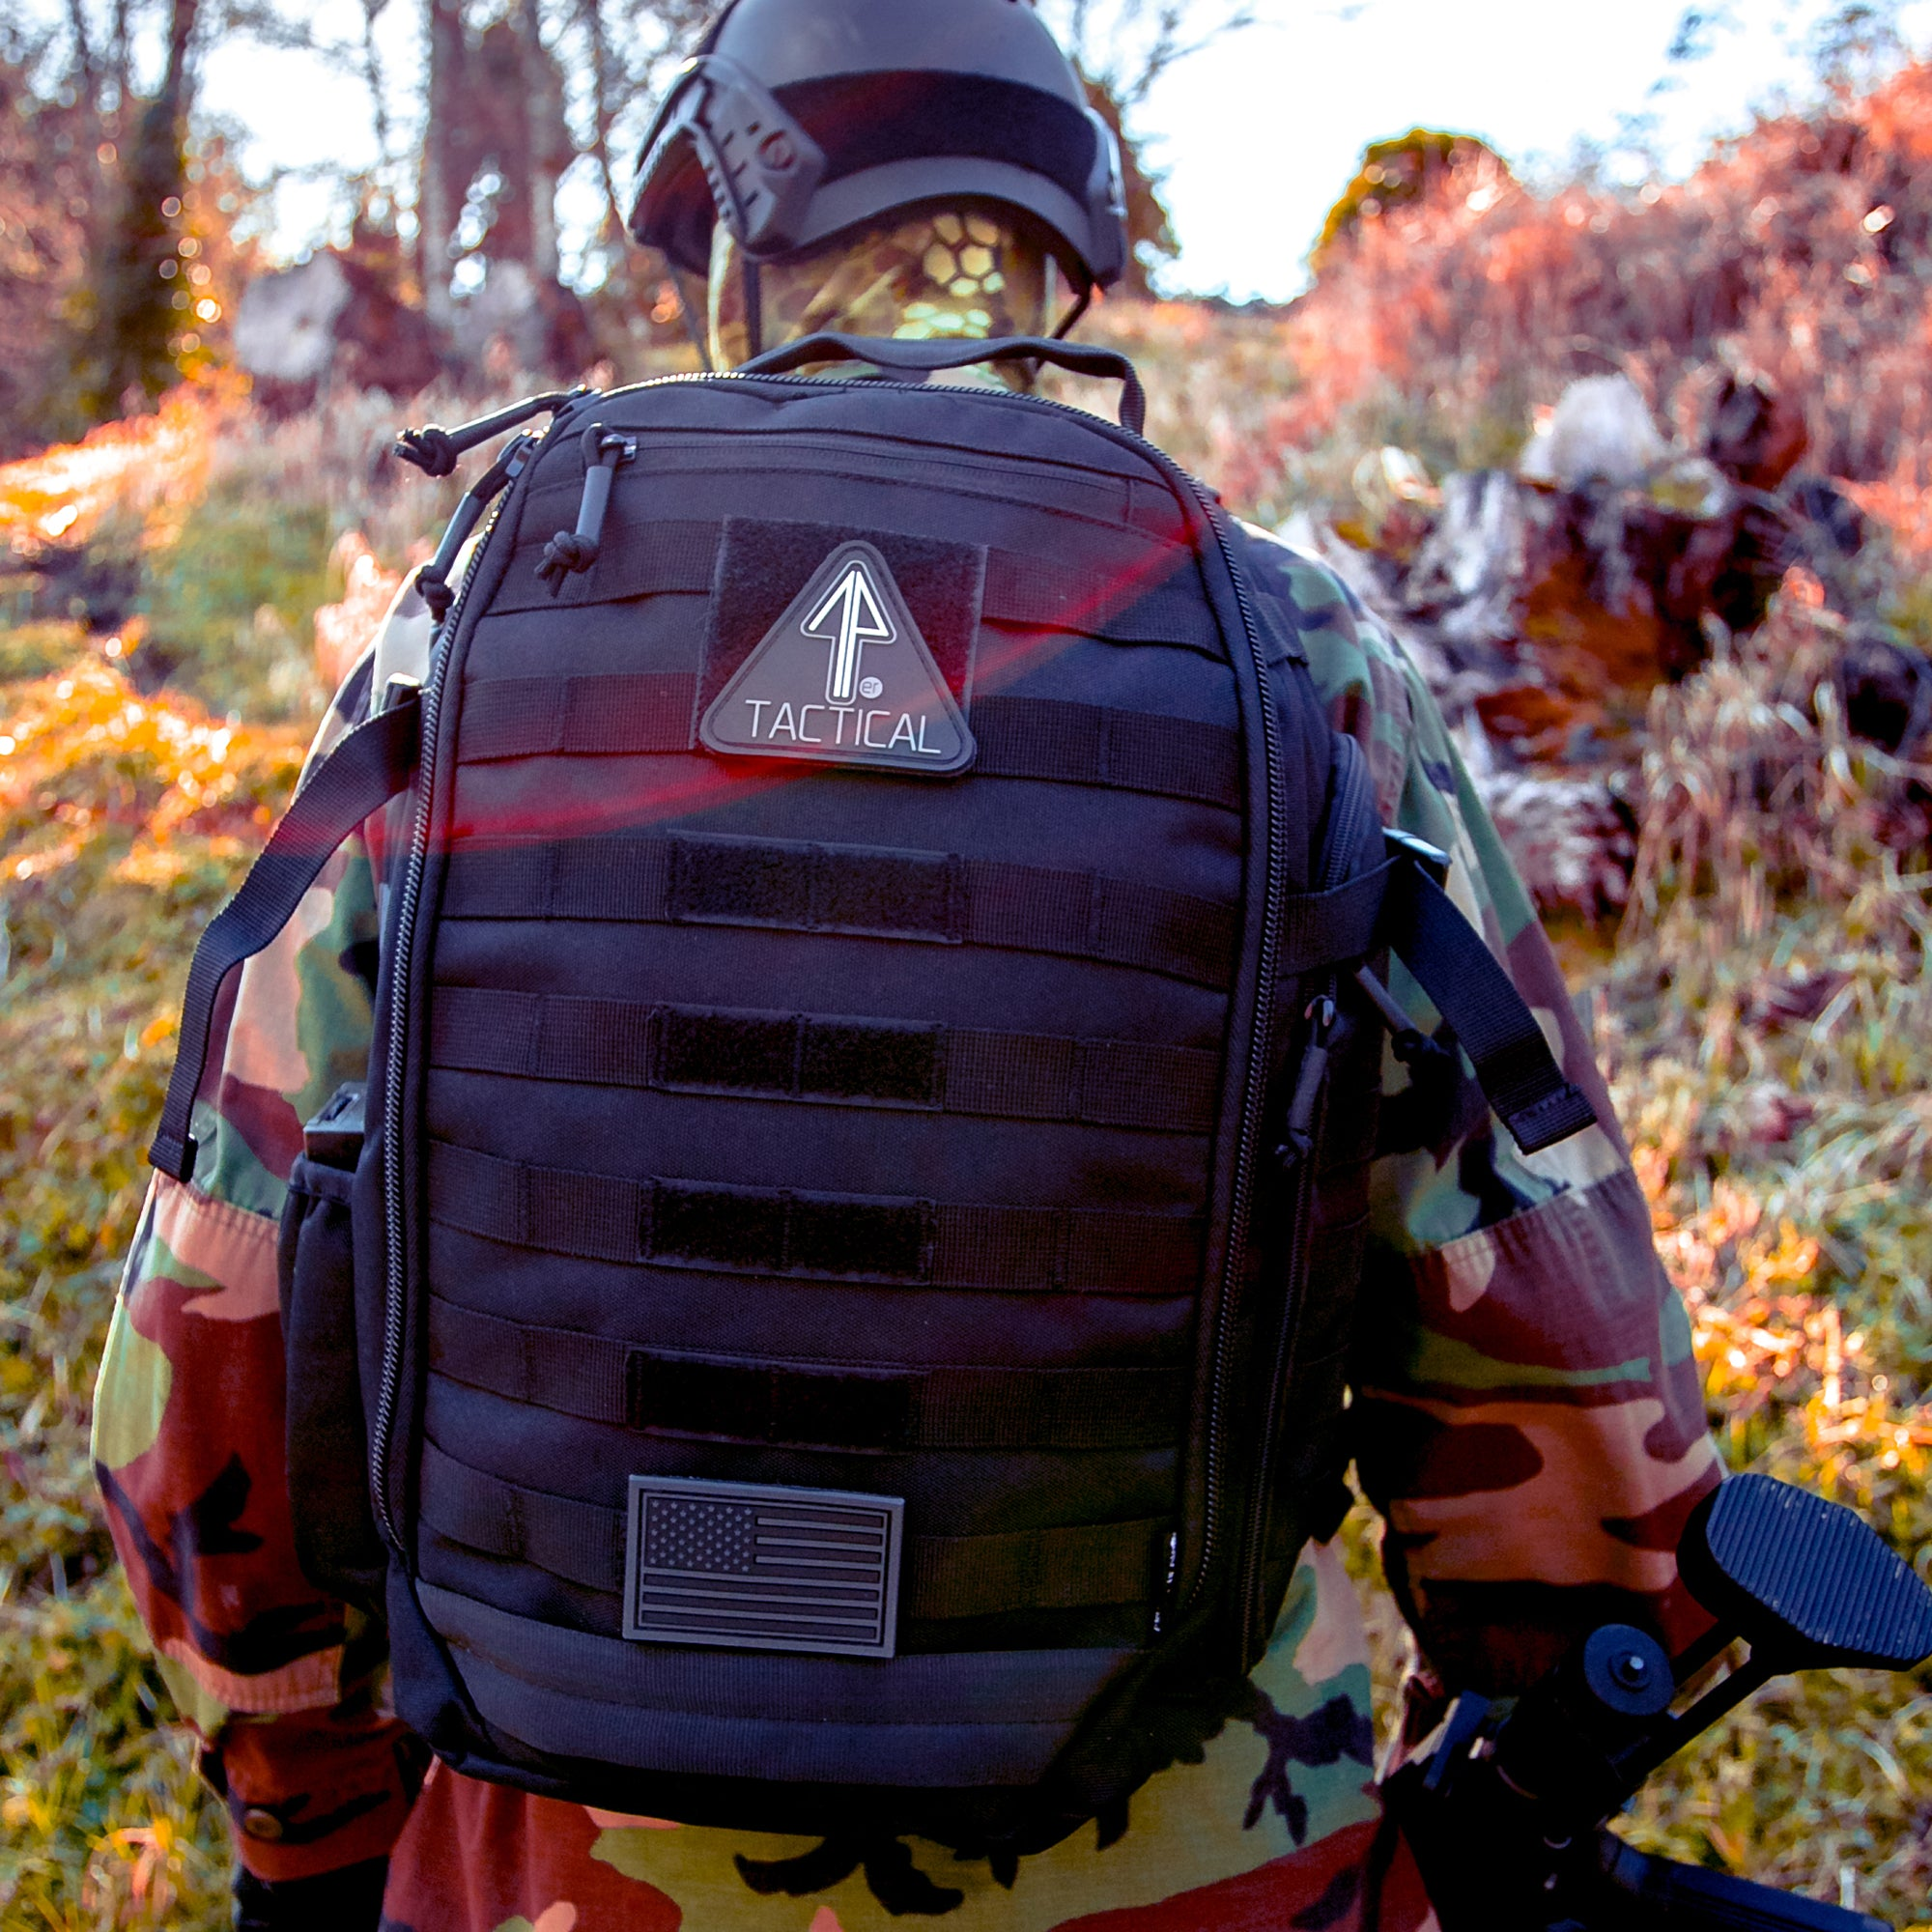 14er Tactical Backpack worn by soldier